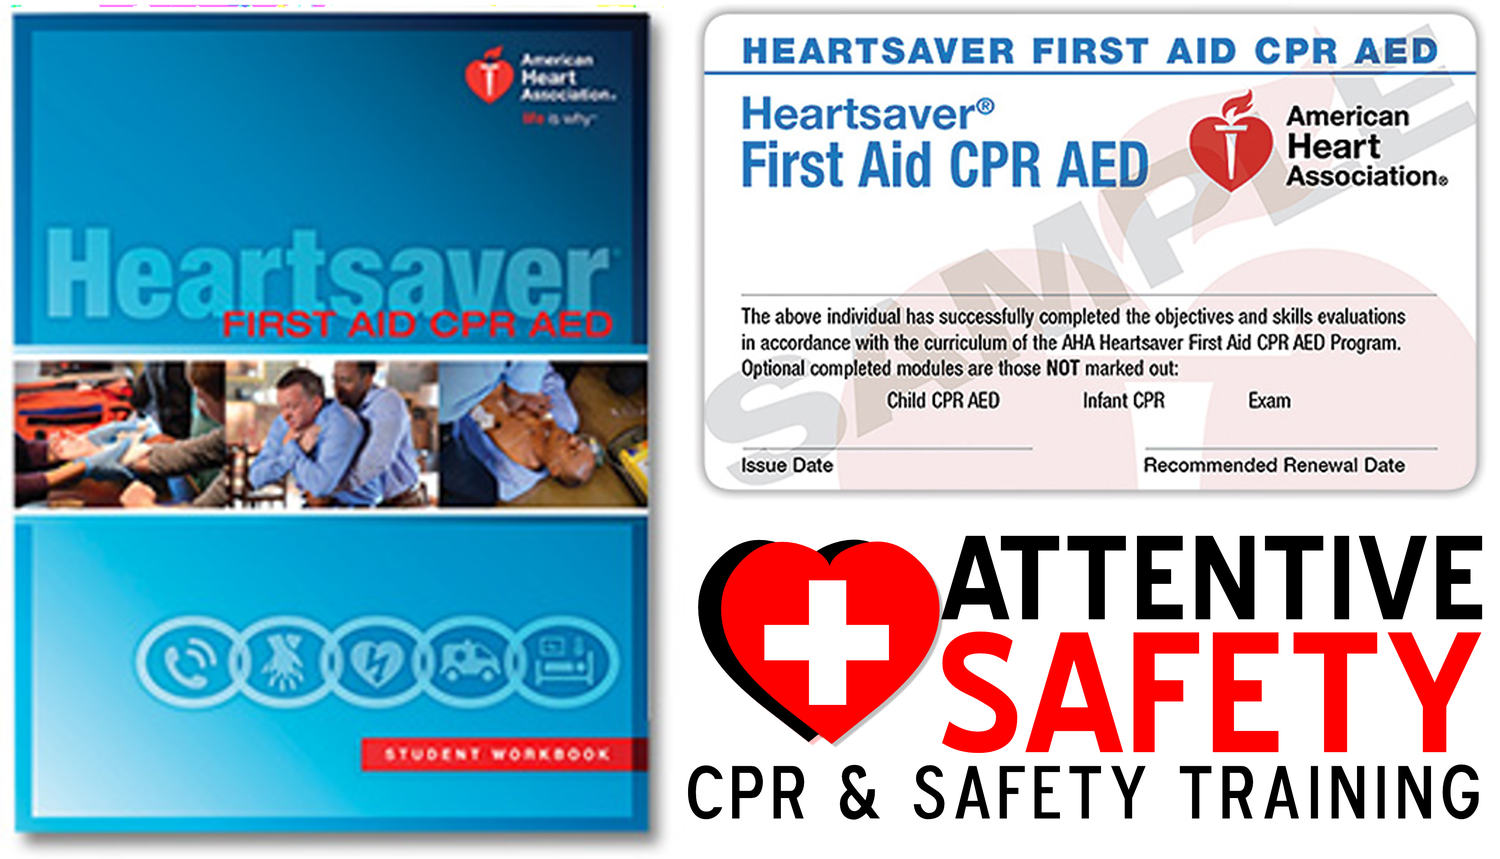 First aid cpr aed skills session must have part 1 certificate heartsaver first aid cpr aed skills session must have part 1 certificate 1betcityfo Images